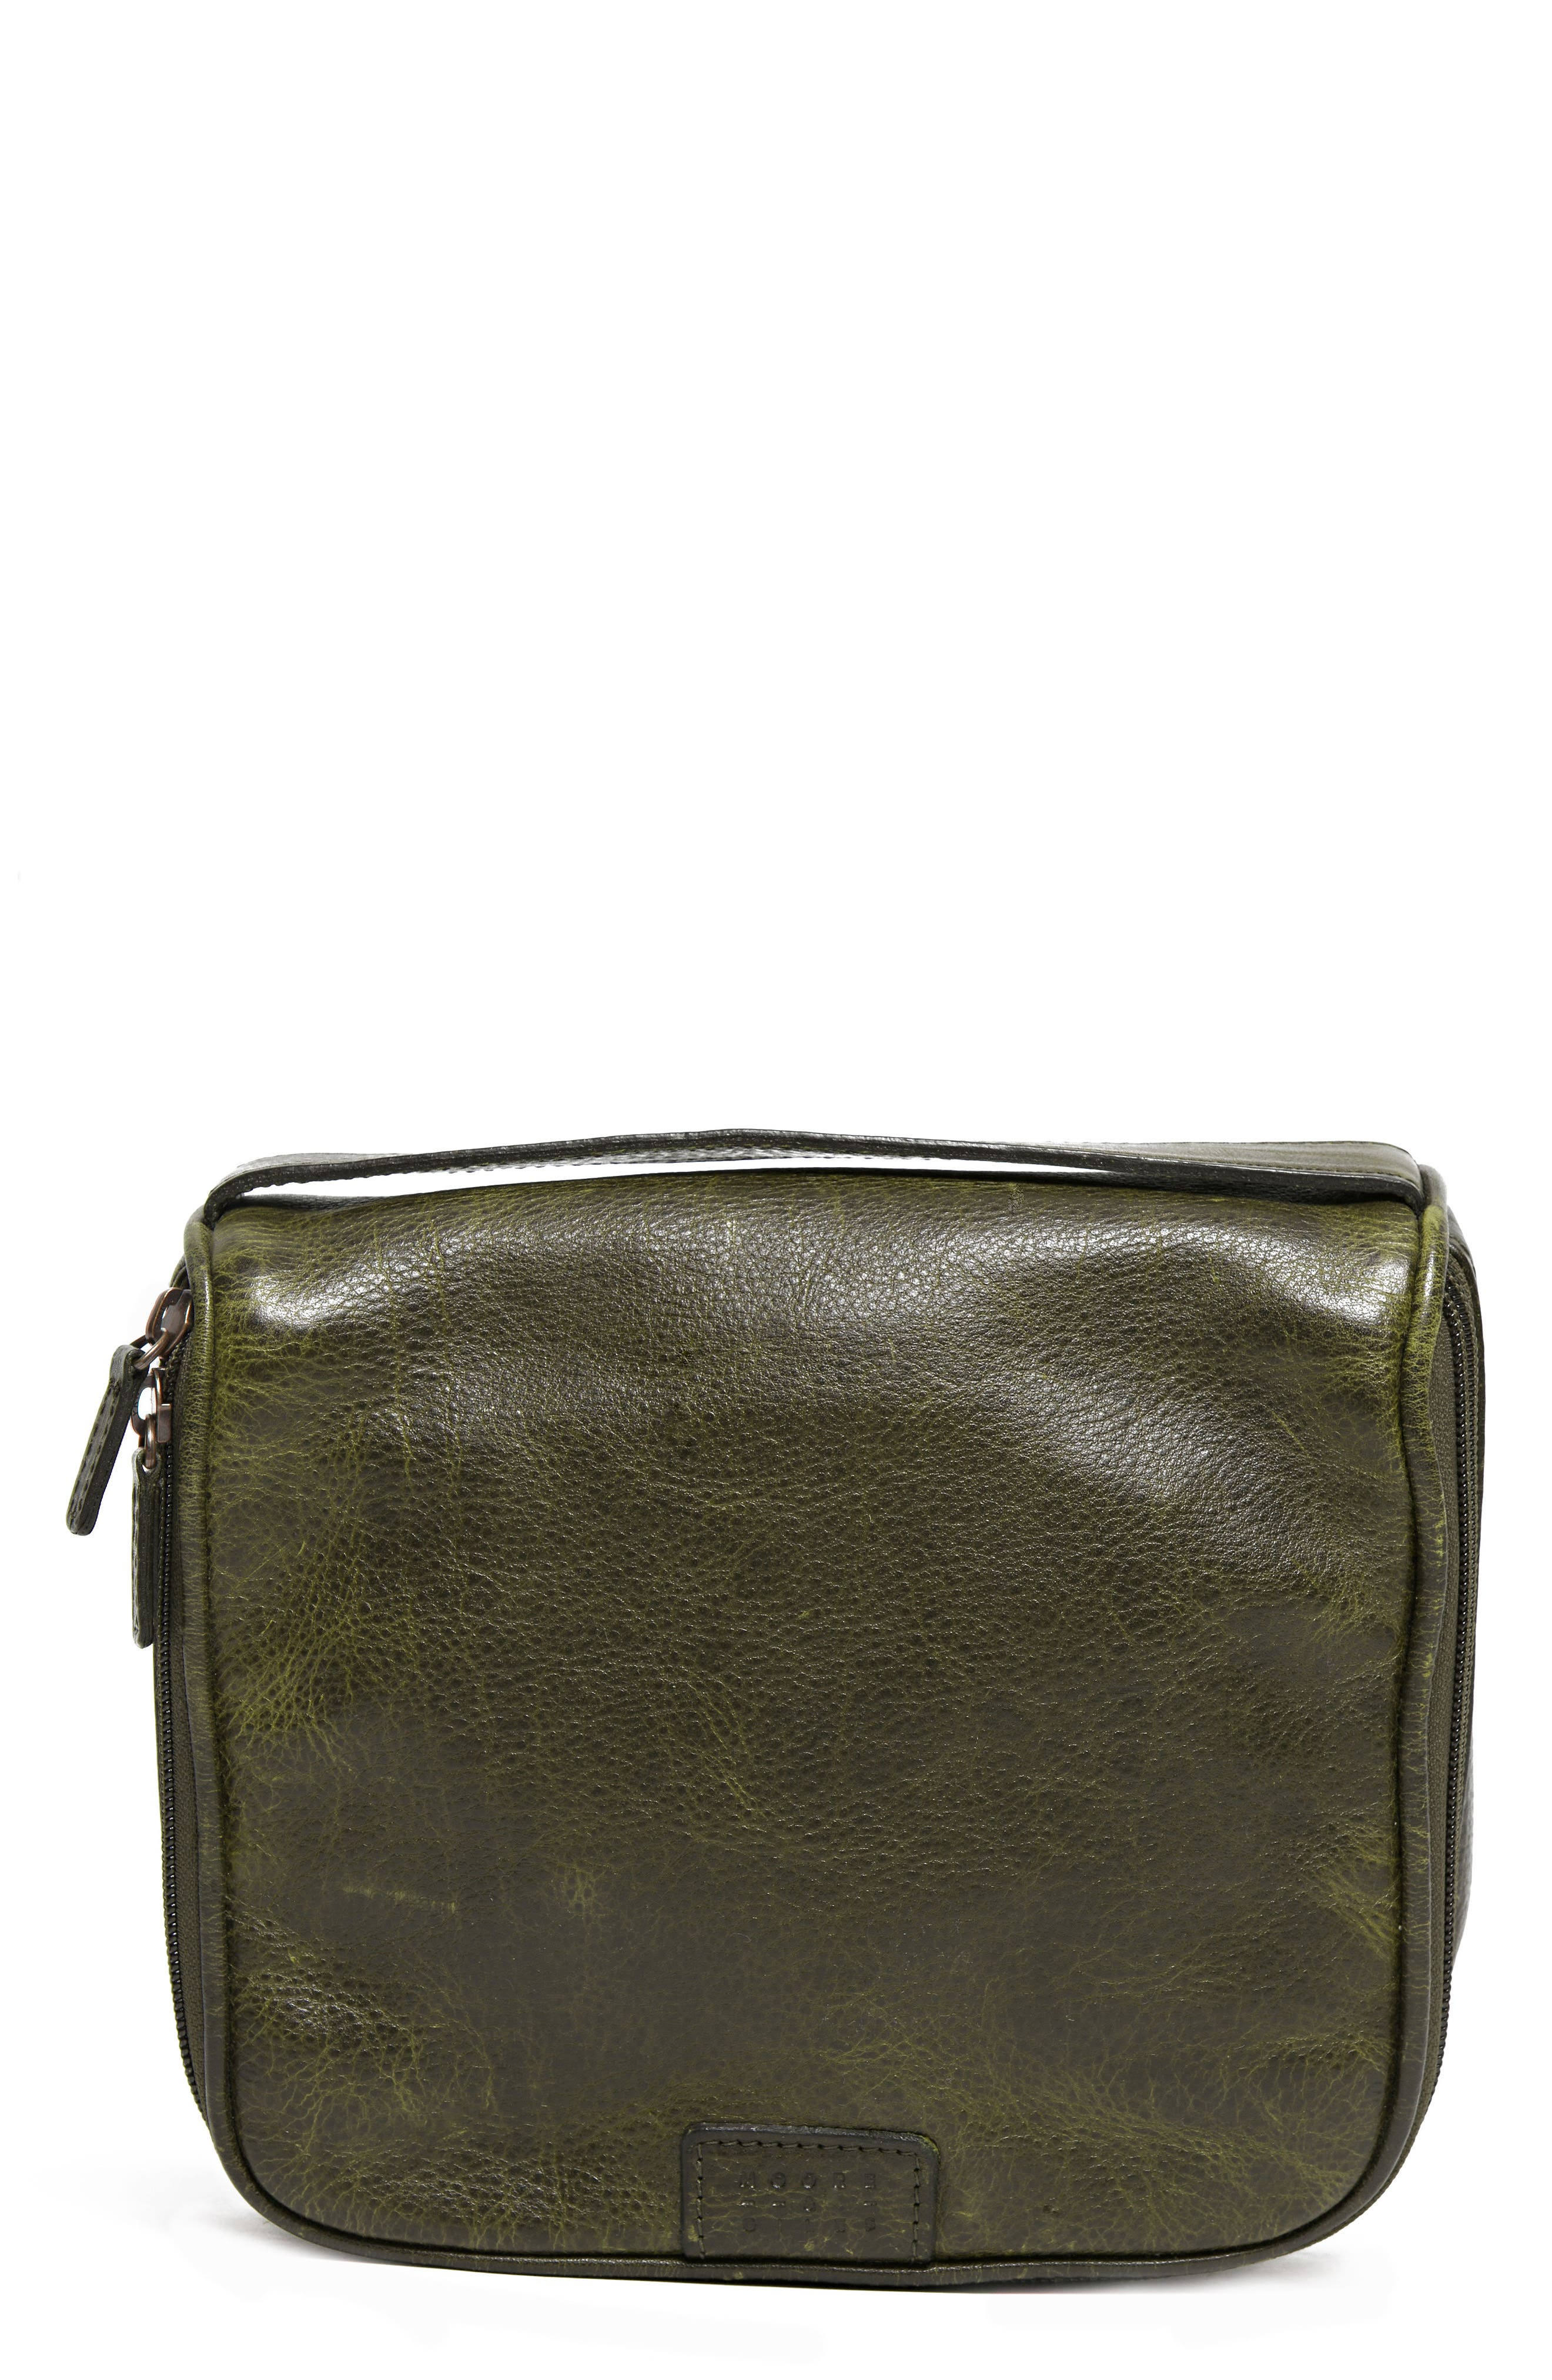 Donald Dopp Kit,                             Main thumbnail 1, color,                             Titan Milled Olive